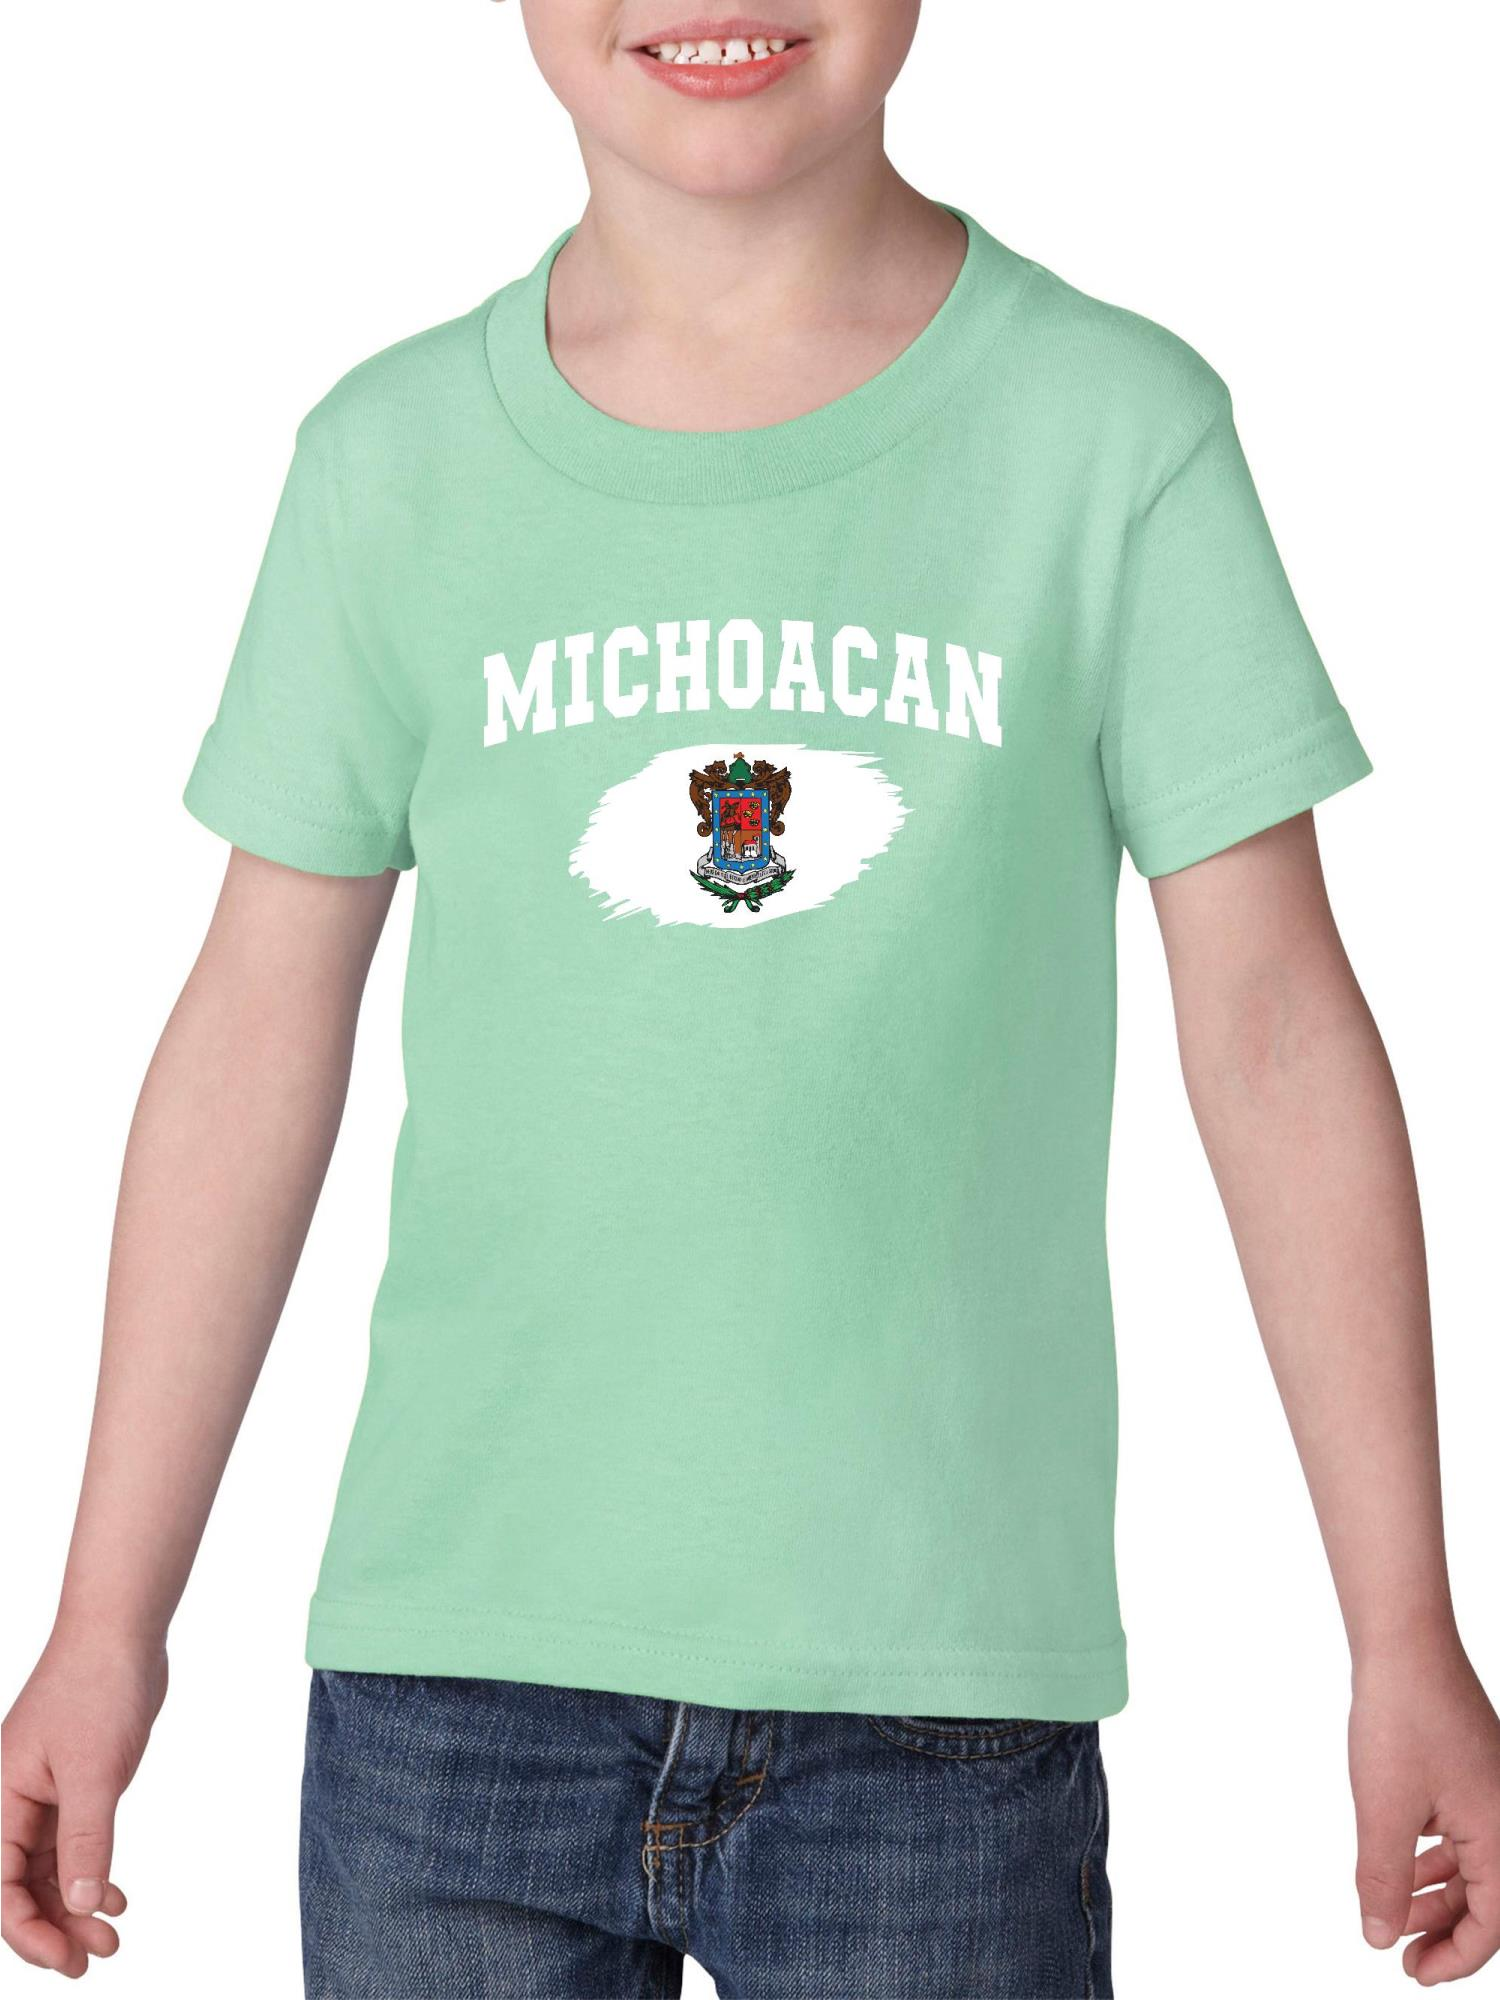 Mexico State of Michoacan Toddler Heavy Cotton T-Shirt Kids Tee Clothing